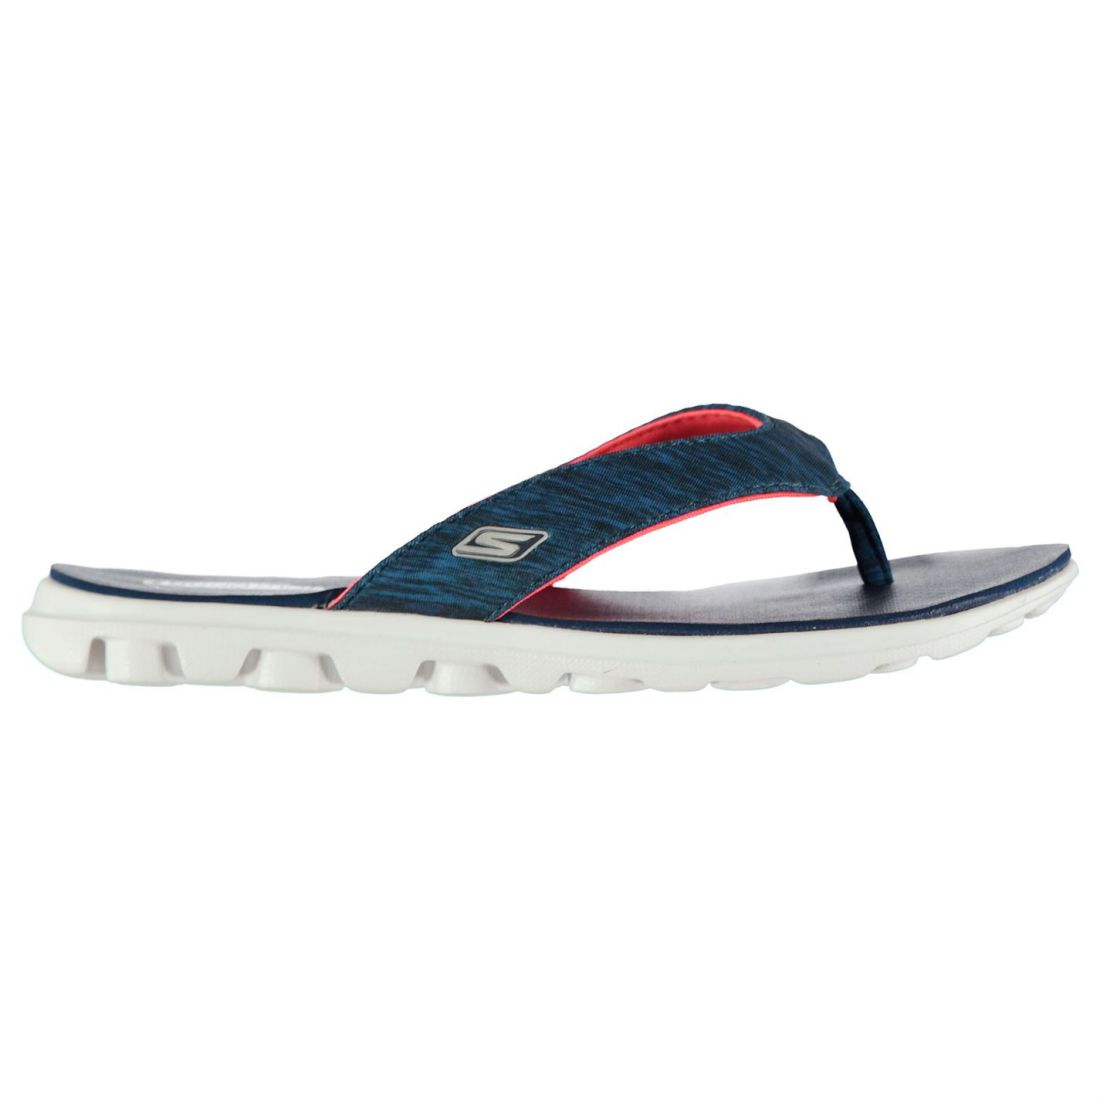 bed0739ea7aa Skechers On The Go Flow Flip Flops Ladies Lightweight Strap Toe Post ...